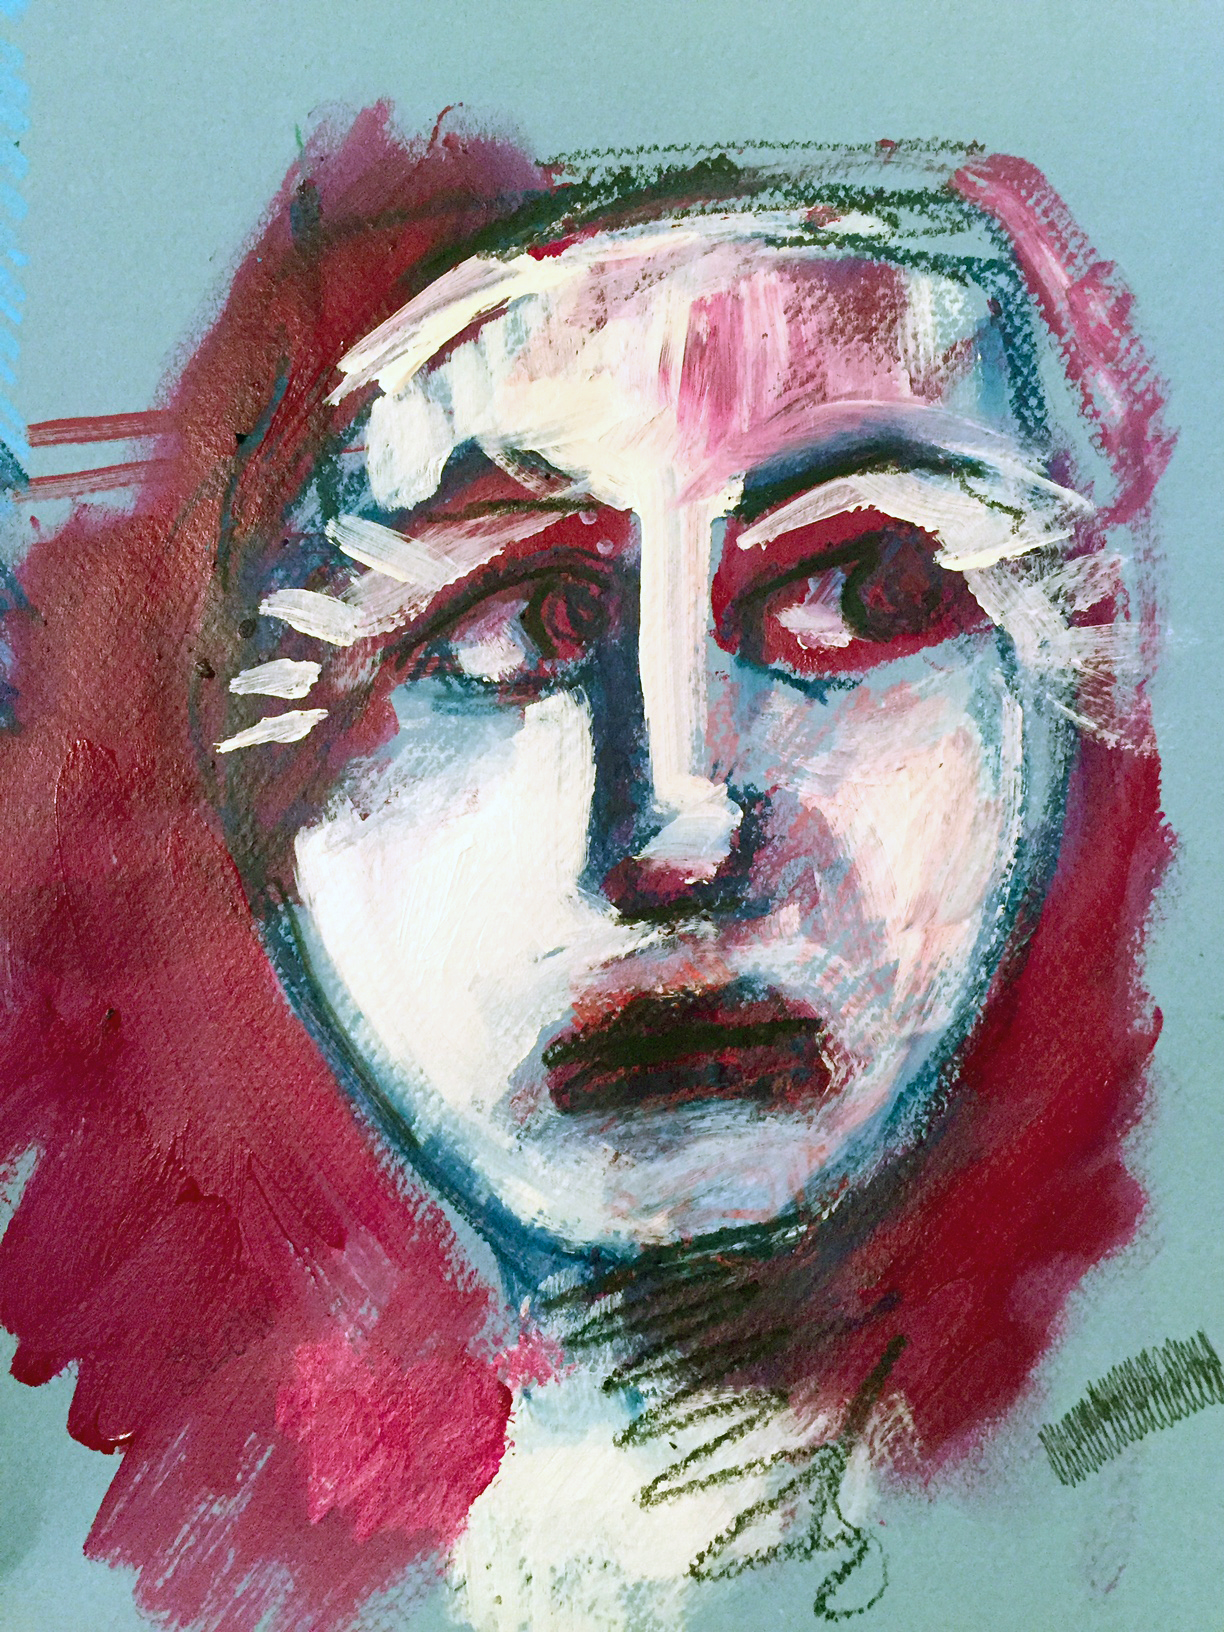 "Exercise in Futility 9"" x 12"" Acrylic, Graphite, Pastels on Paper"